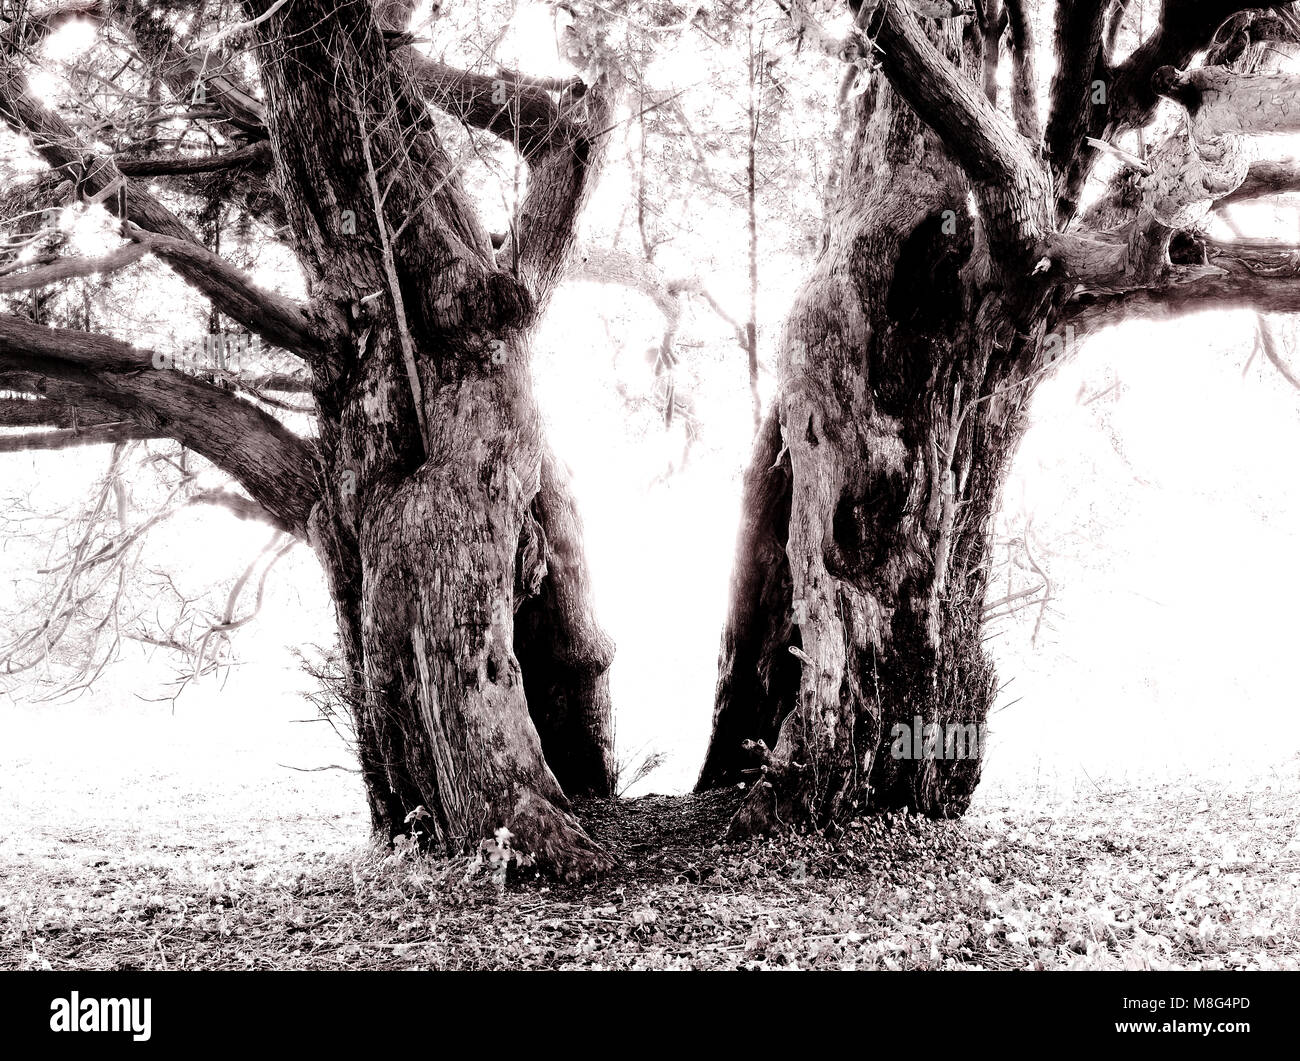 Ancient yew tree. Split in half by lightening hundreds (if not thousands) of years ago. - Stock Image